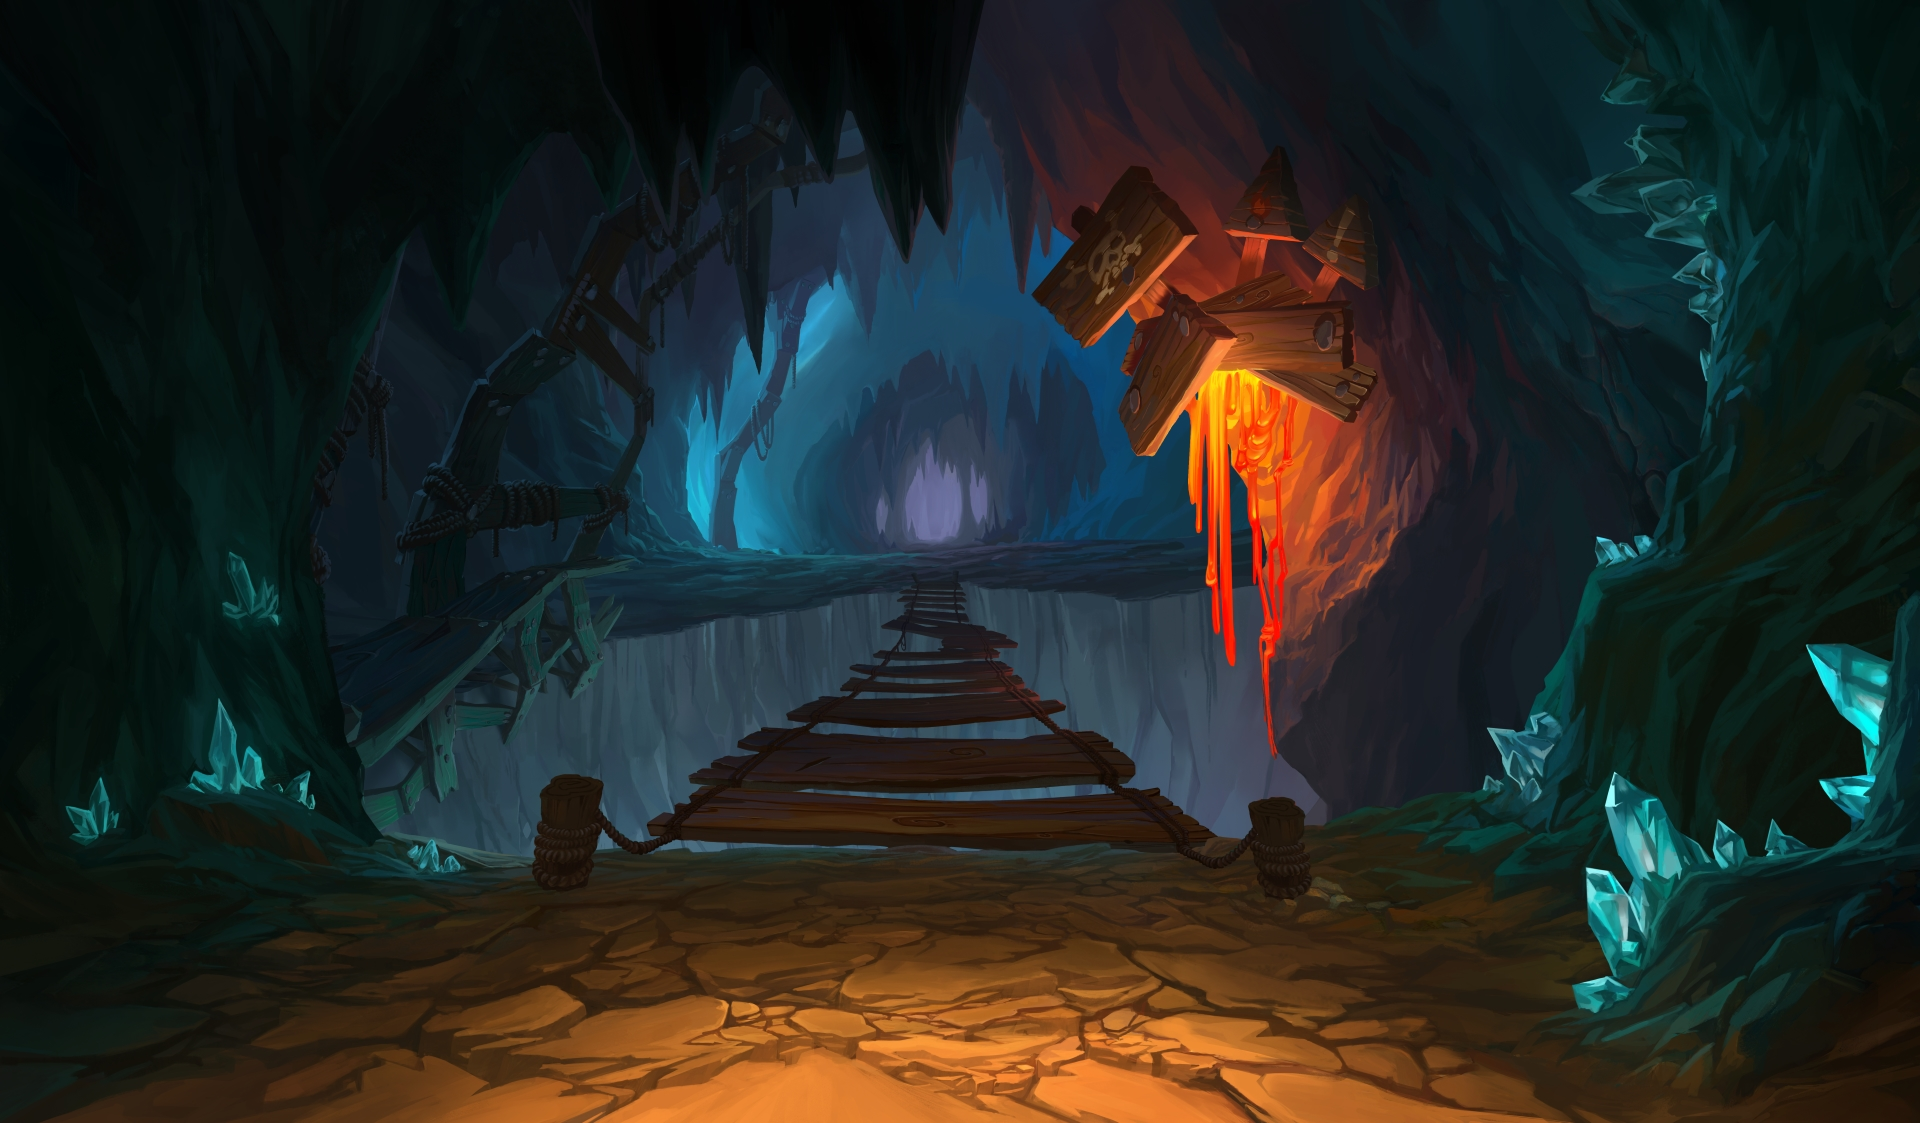 Kobolds-and-Catacombs-is-Hearthstones-next-expansion